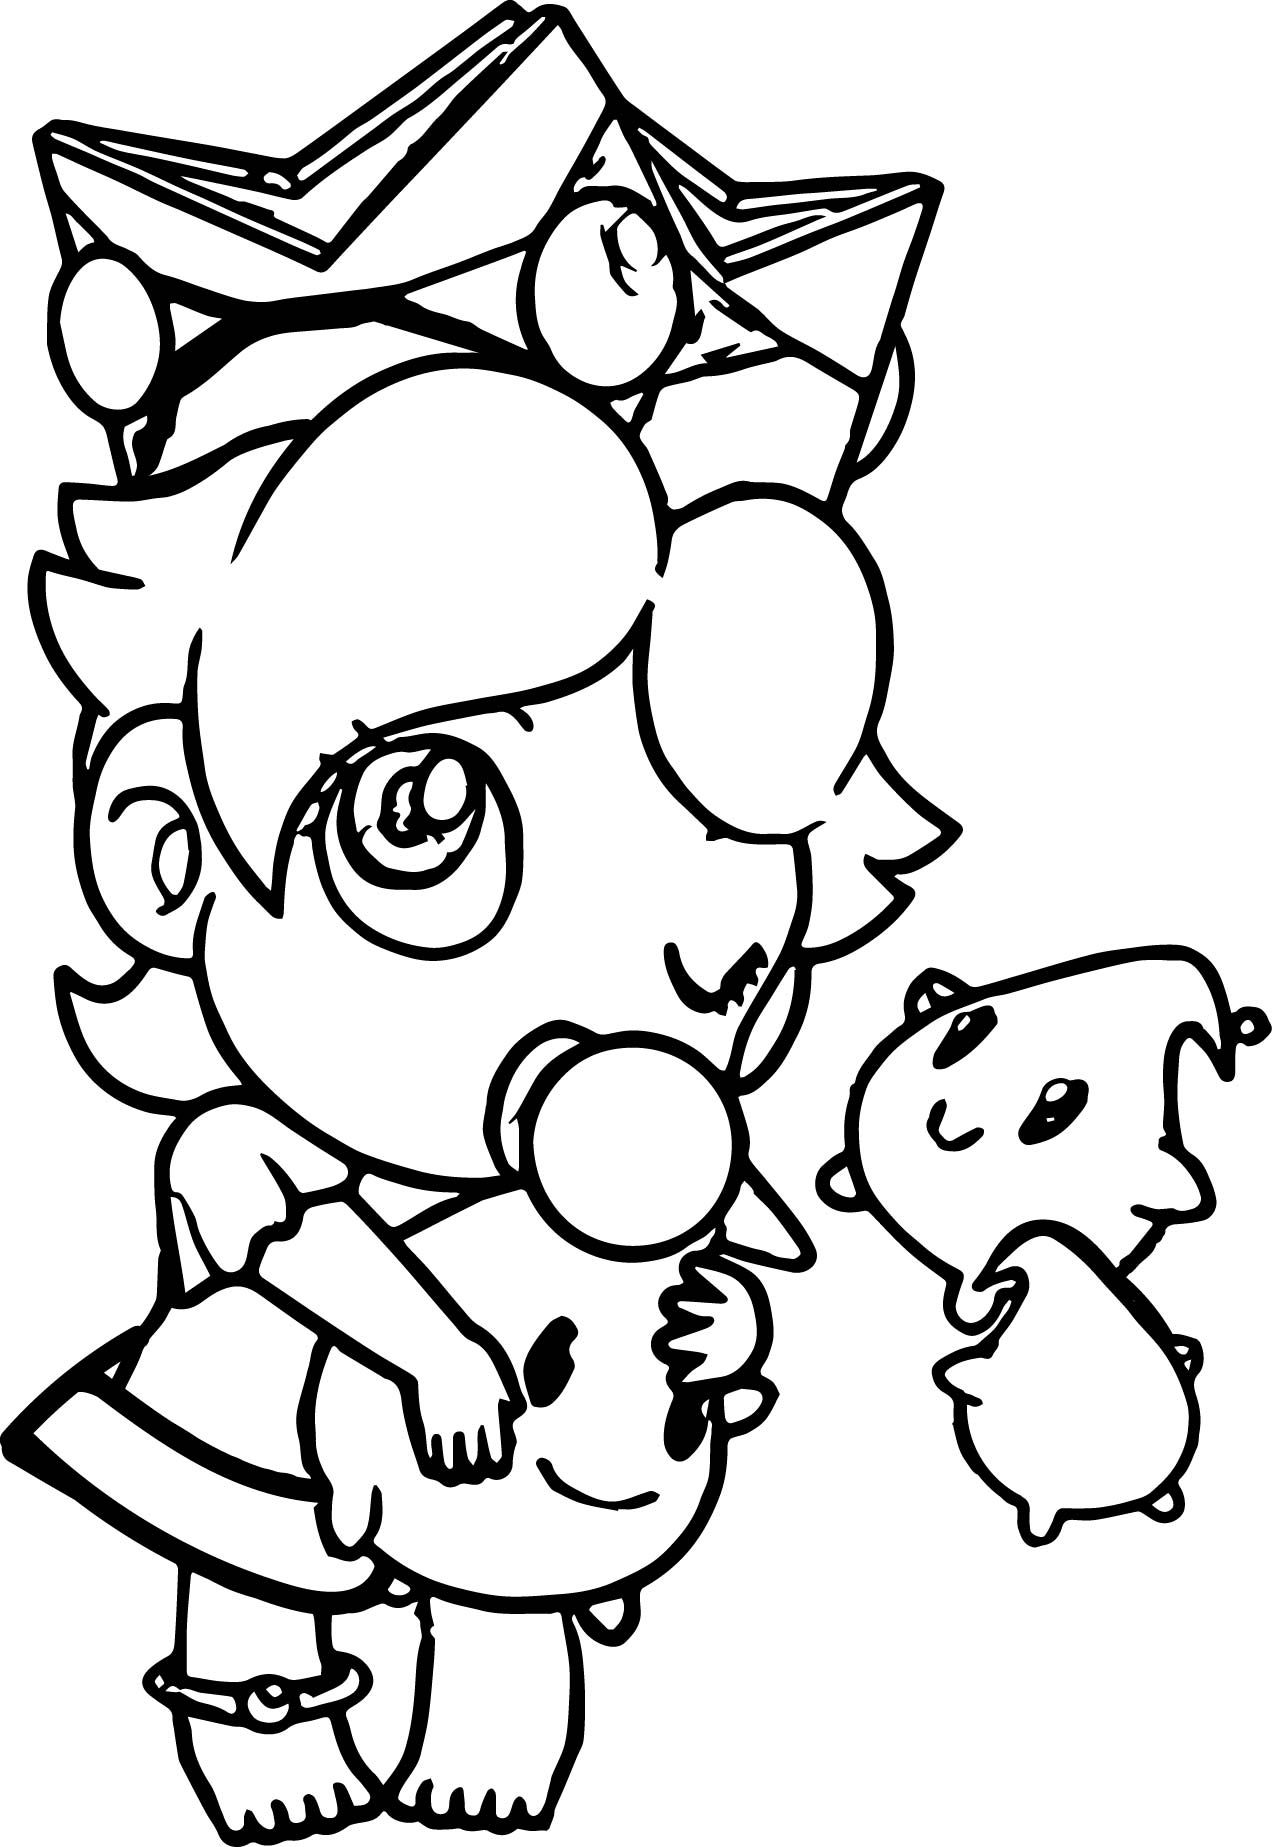 Baby Rosalina Peach Daisy And Rosalina As Babies Coloring Page Mario Coloring Pages Animal Coloring Pages Baby Coloring Pages